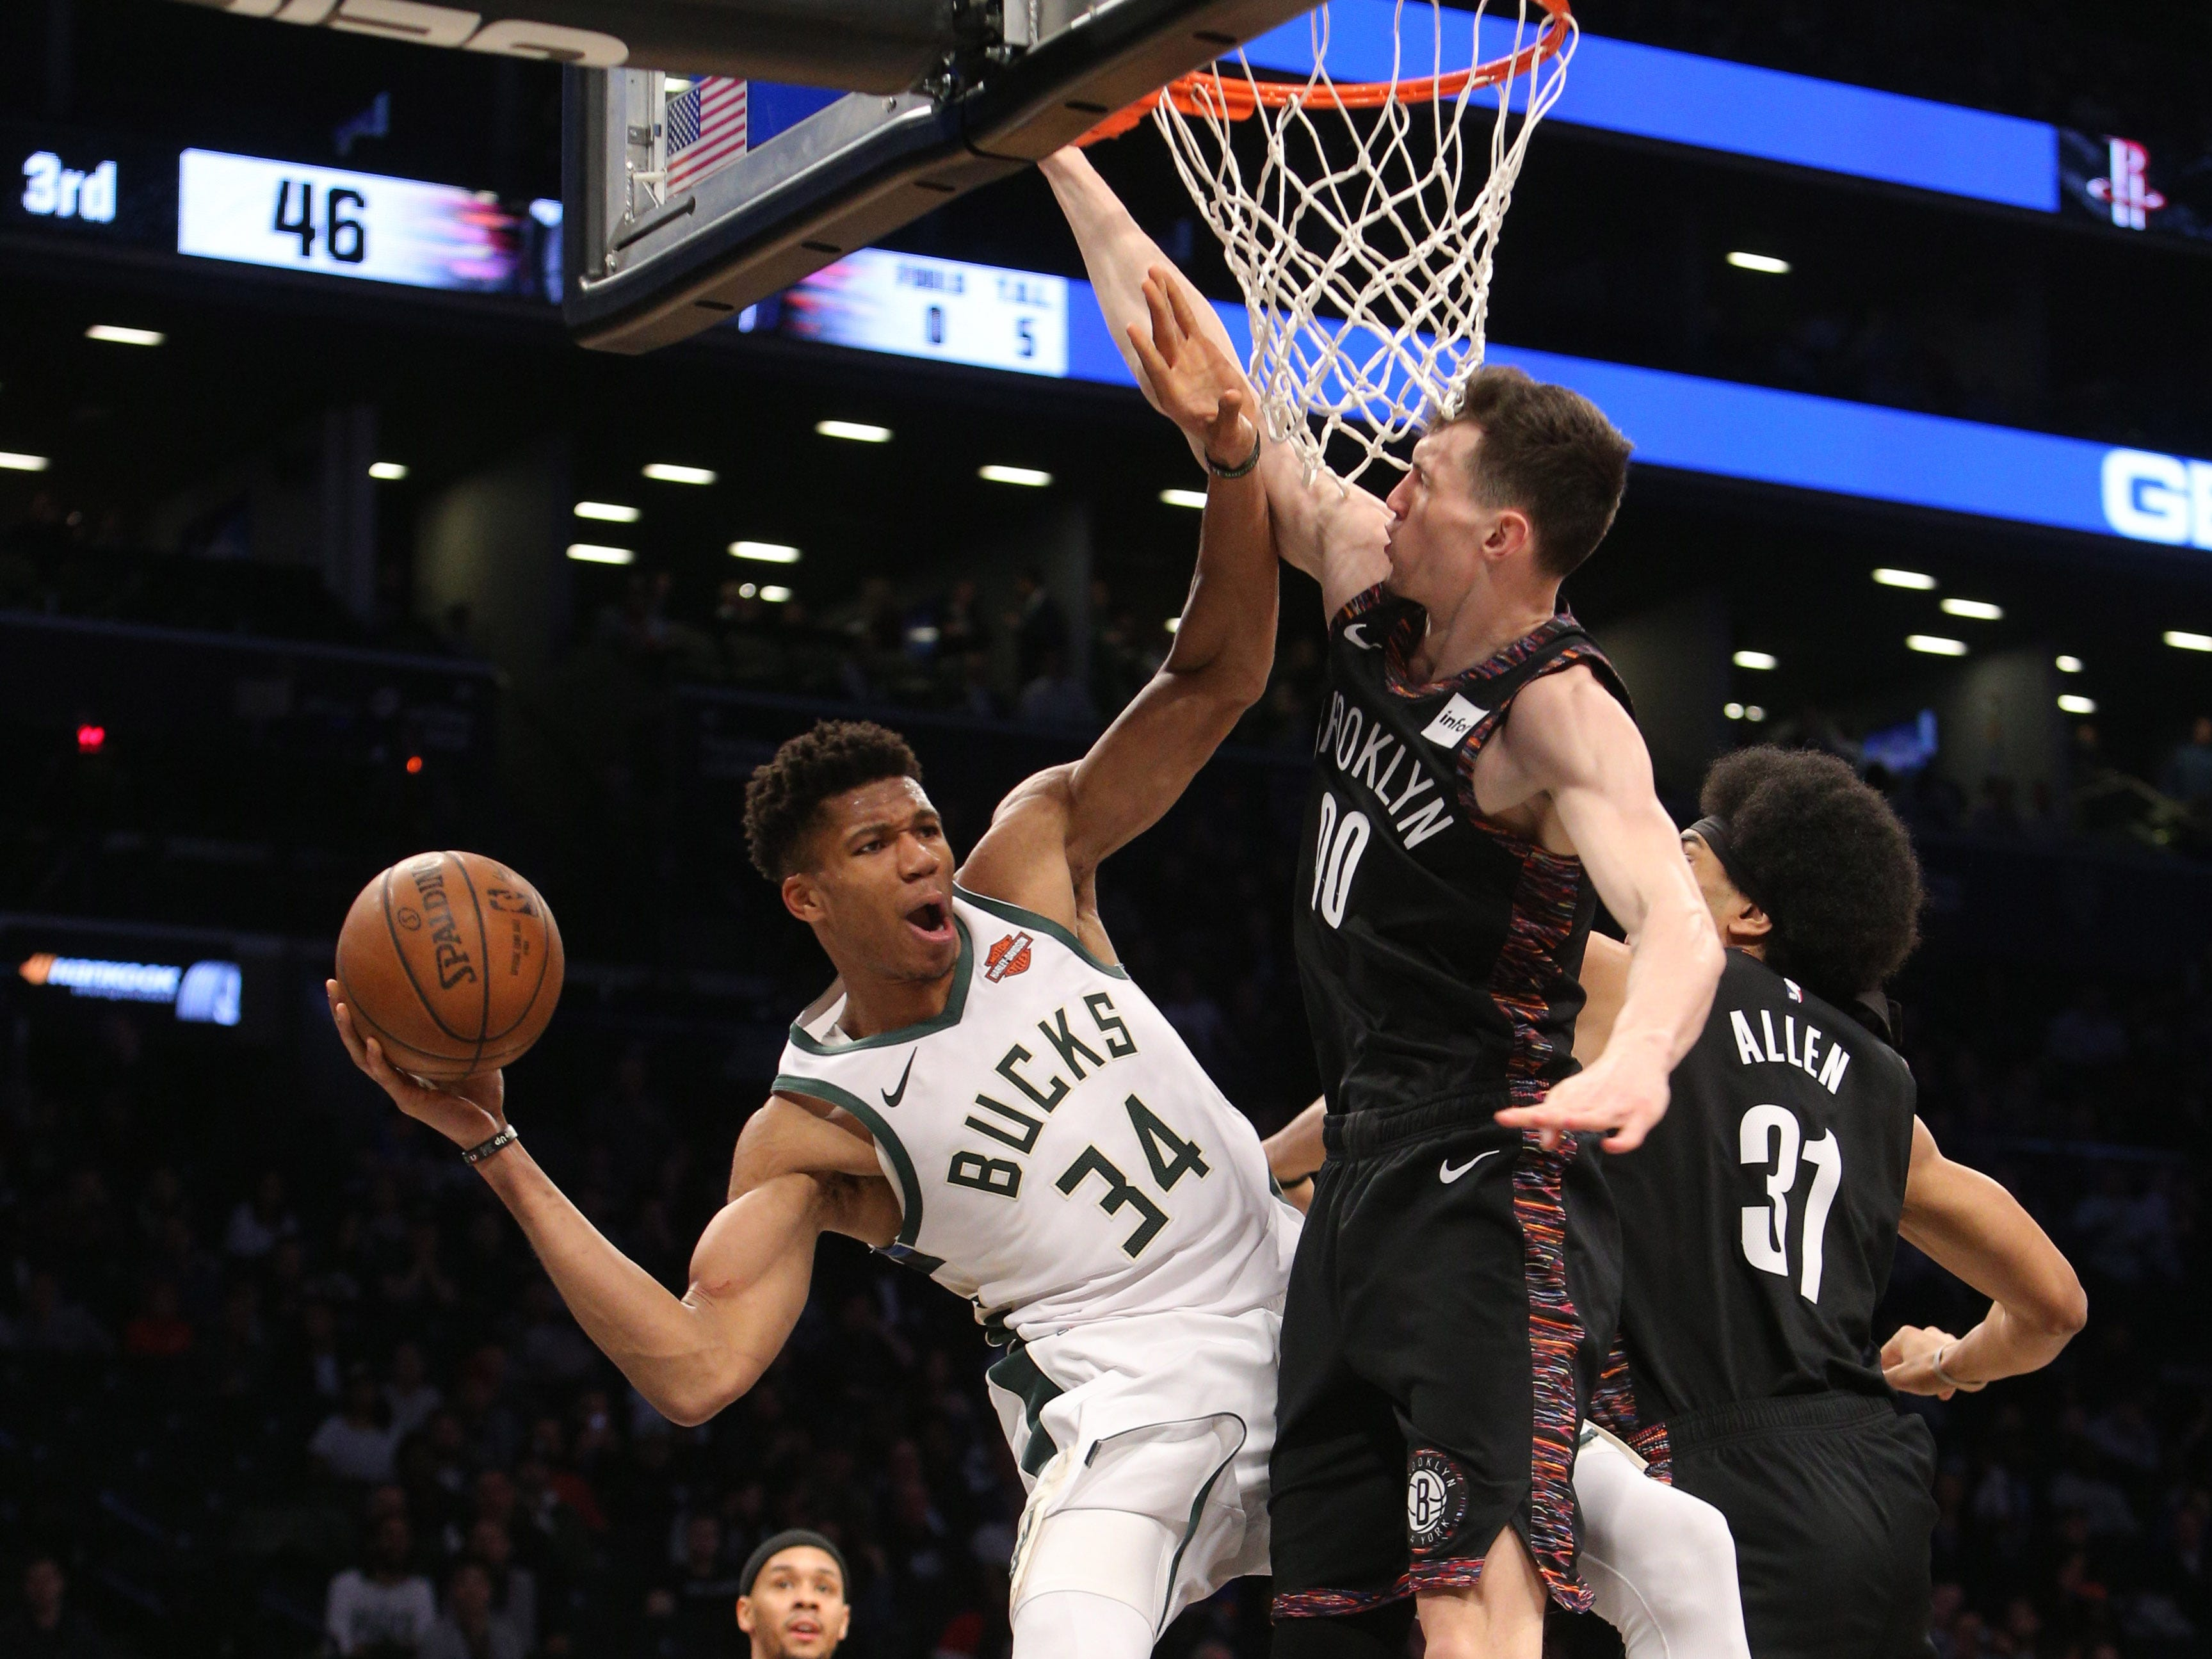 Bucks forward Giannis Antetokounmpo leans to his right side to whip a pass around Rodions Kurucs (center) and Jarrett Allen of the Nets during the third quarter Monday.